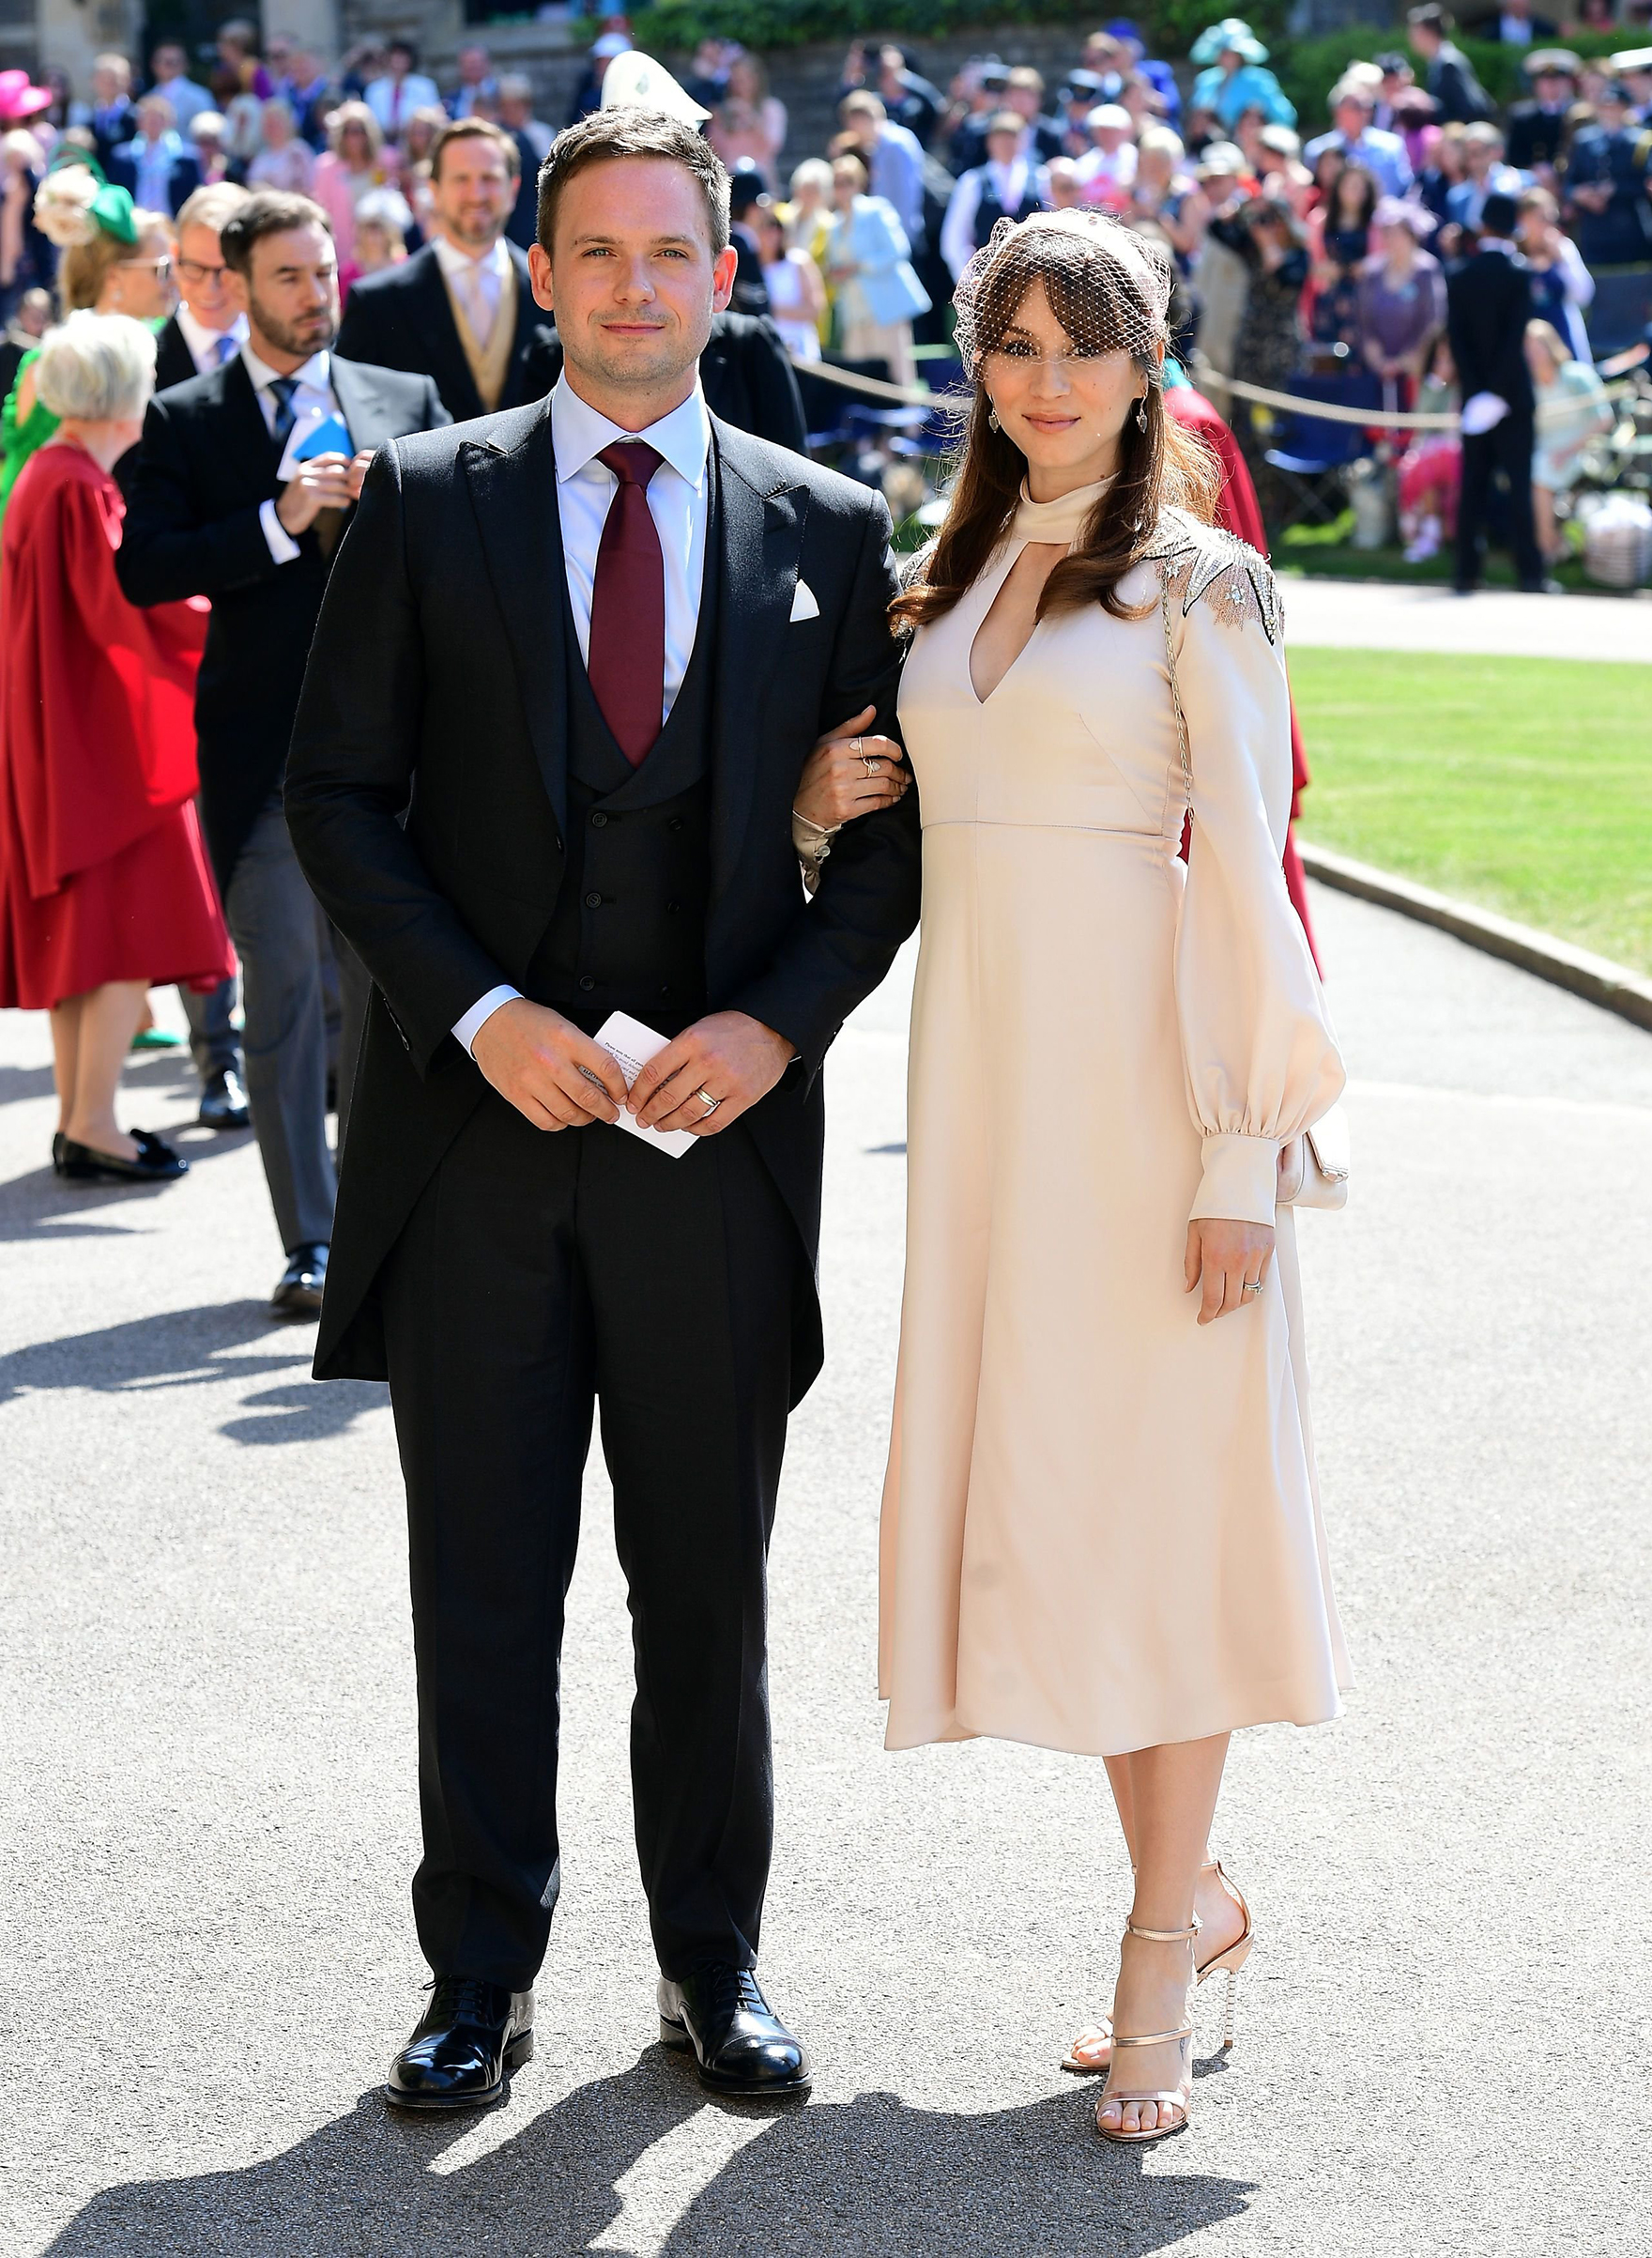 Patrick J. Adams and Troian Bellisario arrive for the wedding ceremony of Prince Harry, Duke of Sussex and Meghan Markle at St George's Chapel, Windsor Castle, in Windsor, on May 19, 2018.